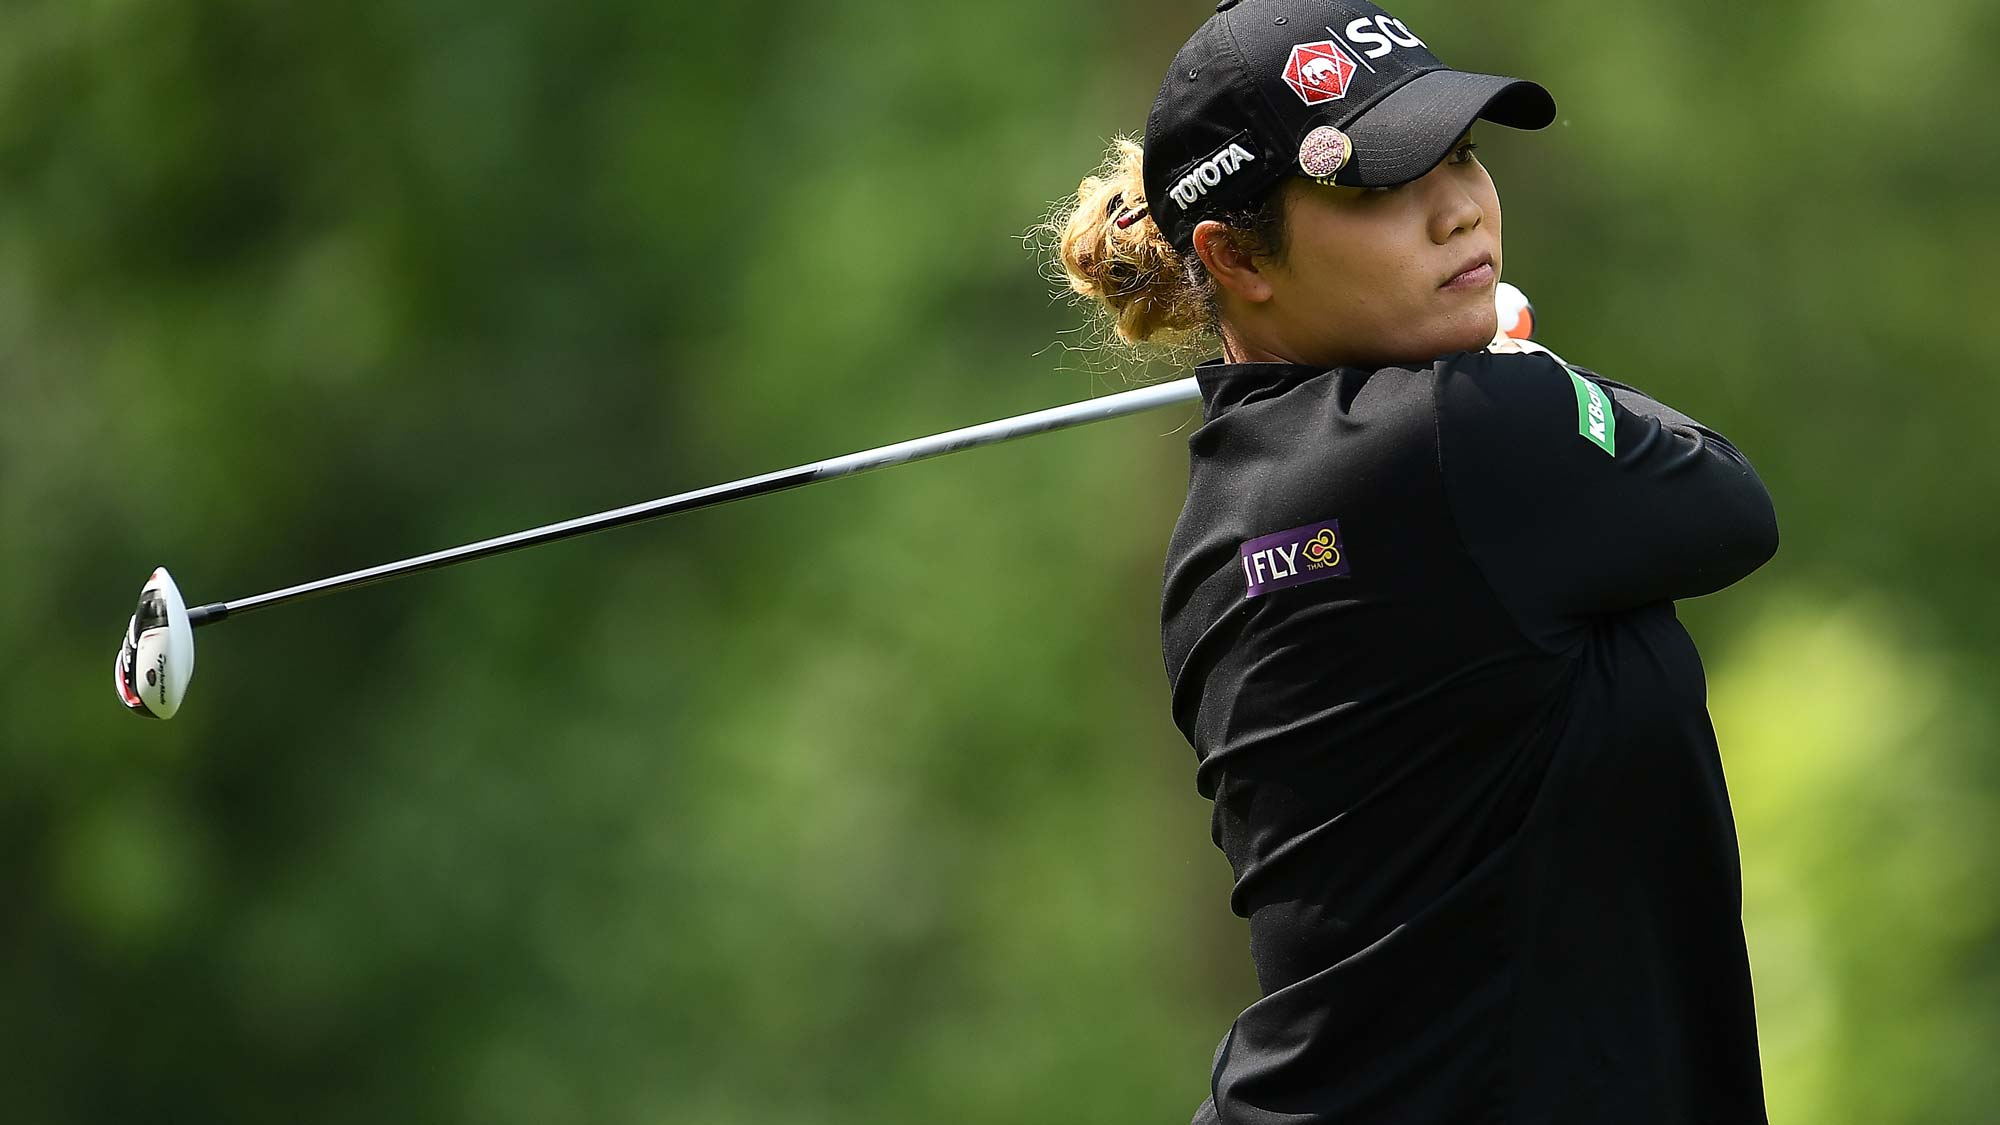 Ariya Jutanugarn of Thailand hits her tee shot on the third hole during the final round of the Thornberry Creek LPGA Classic